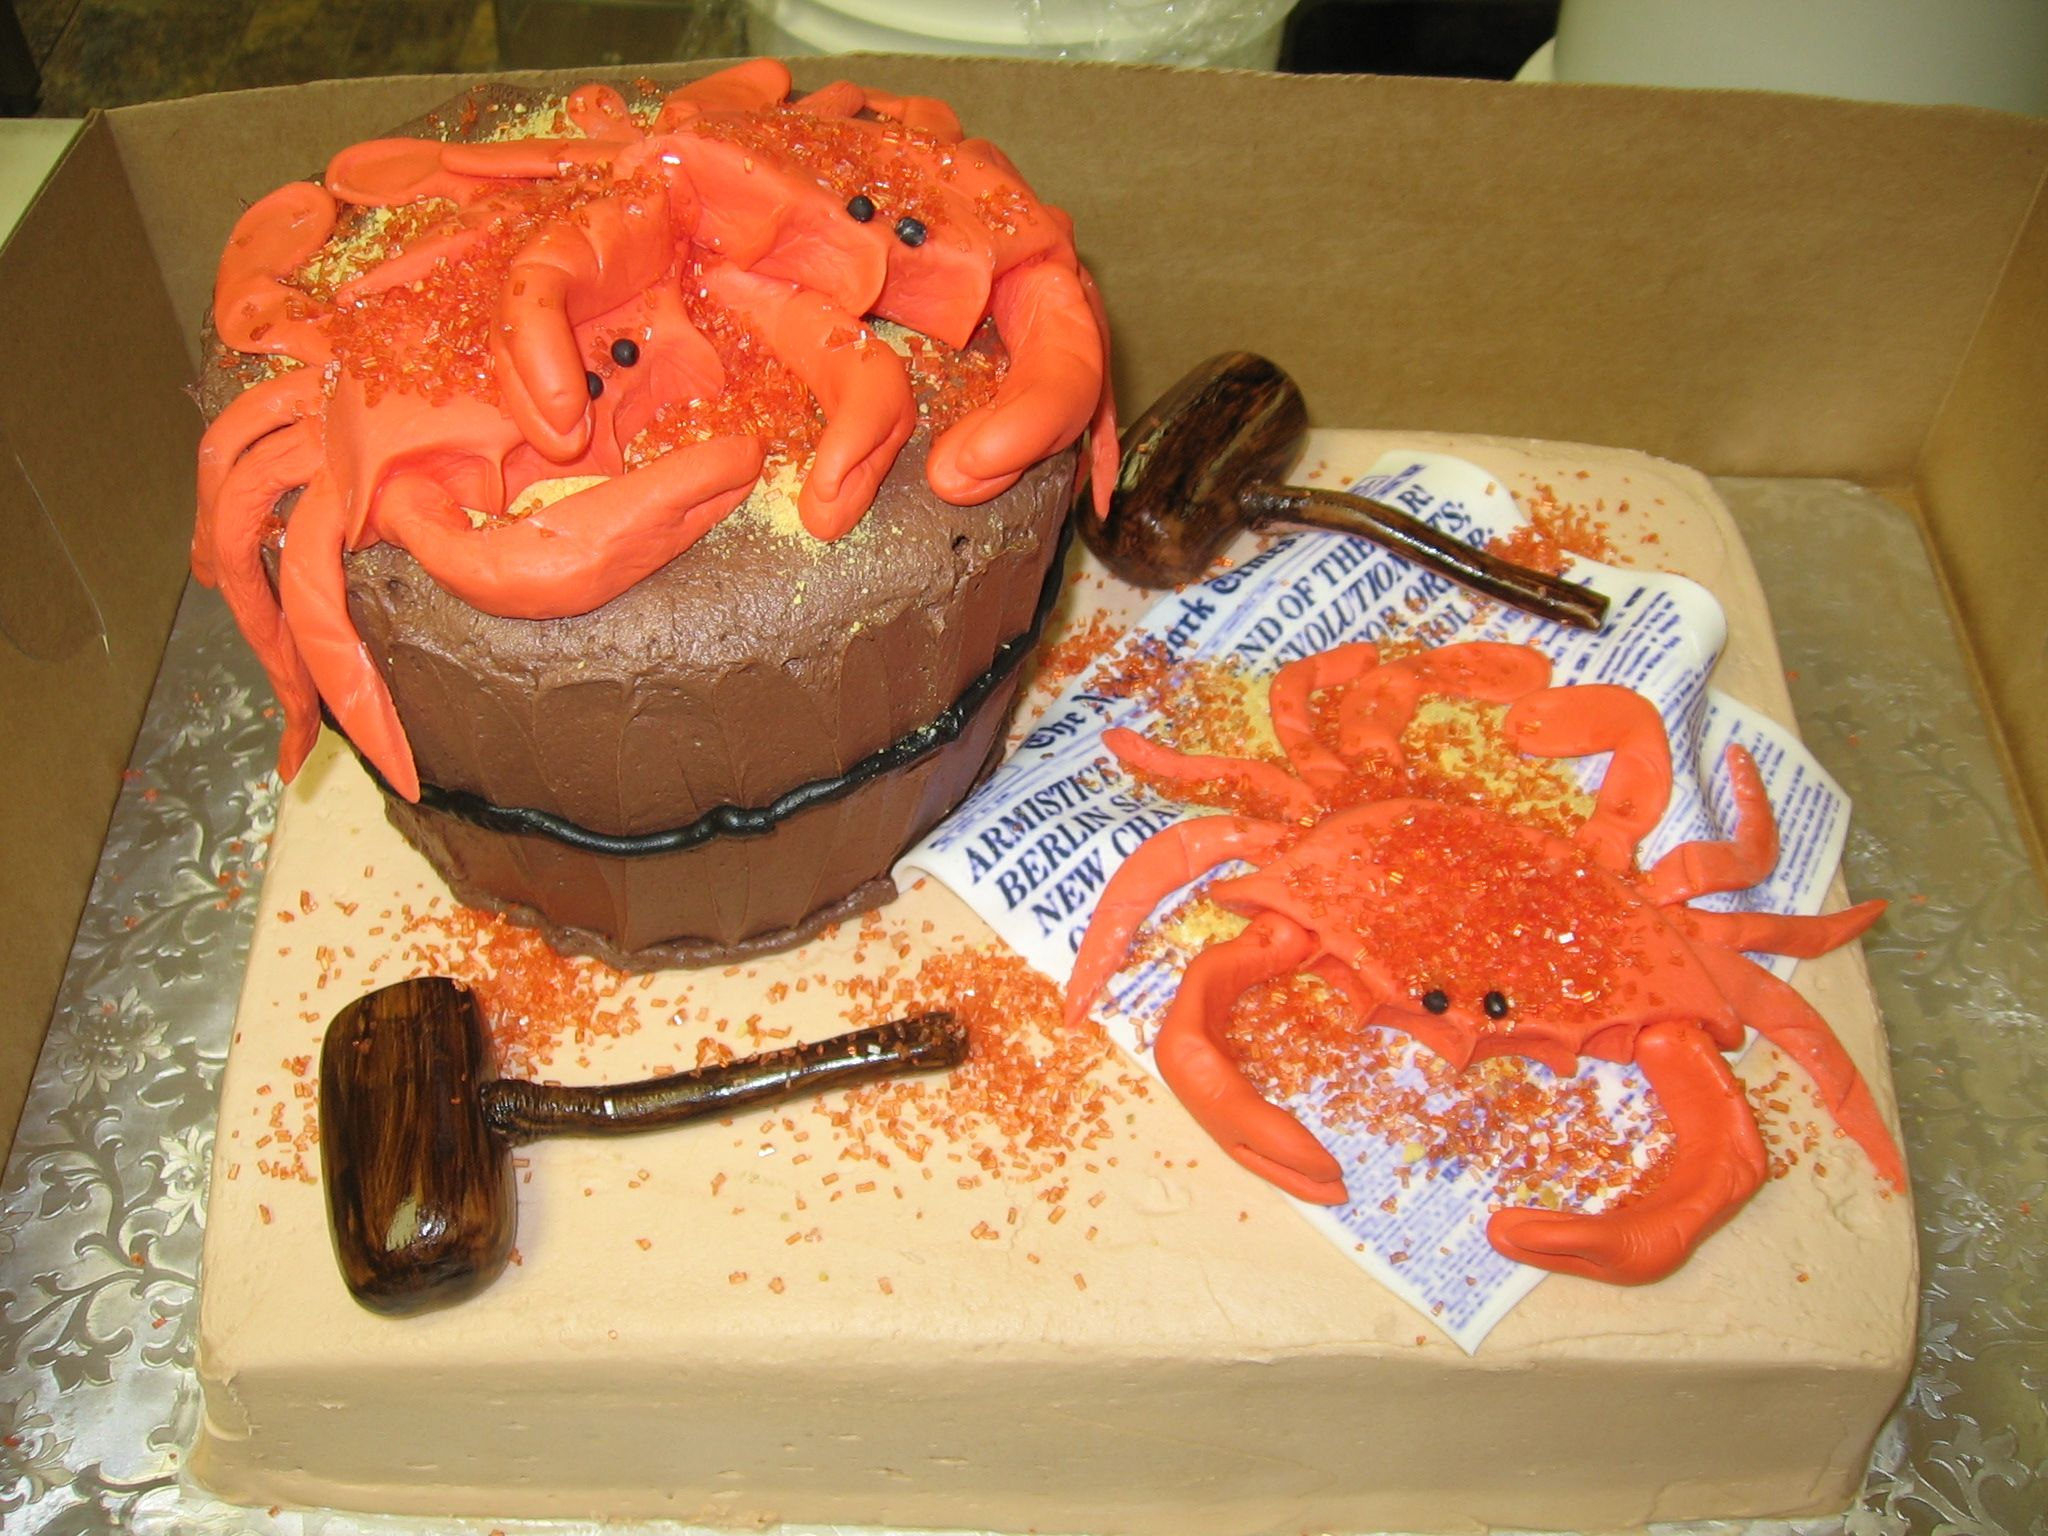 Maryland Crab Themed Birthday Cake by Main Street Sweets Bakery out